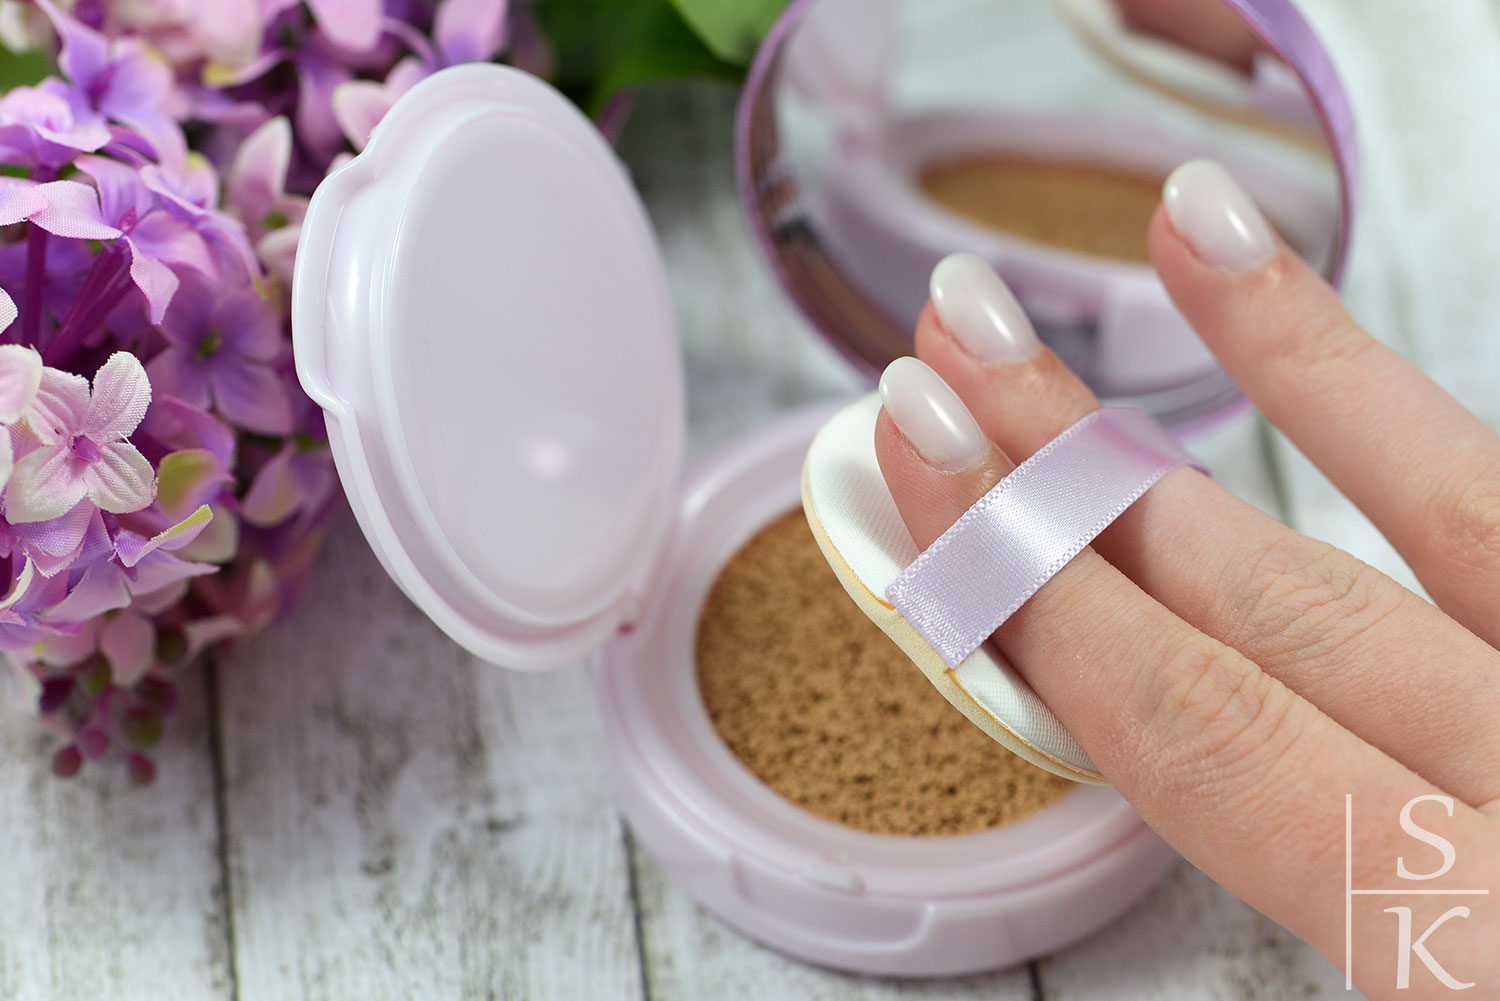 L'Oréal - Cushion Foundation